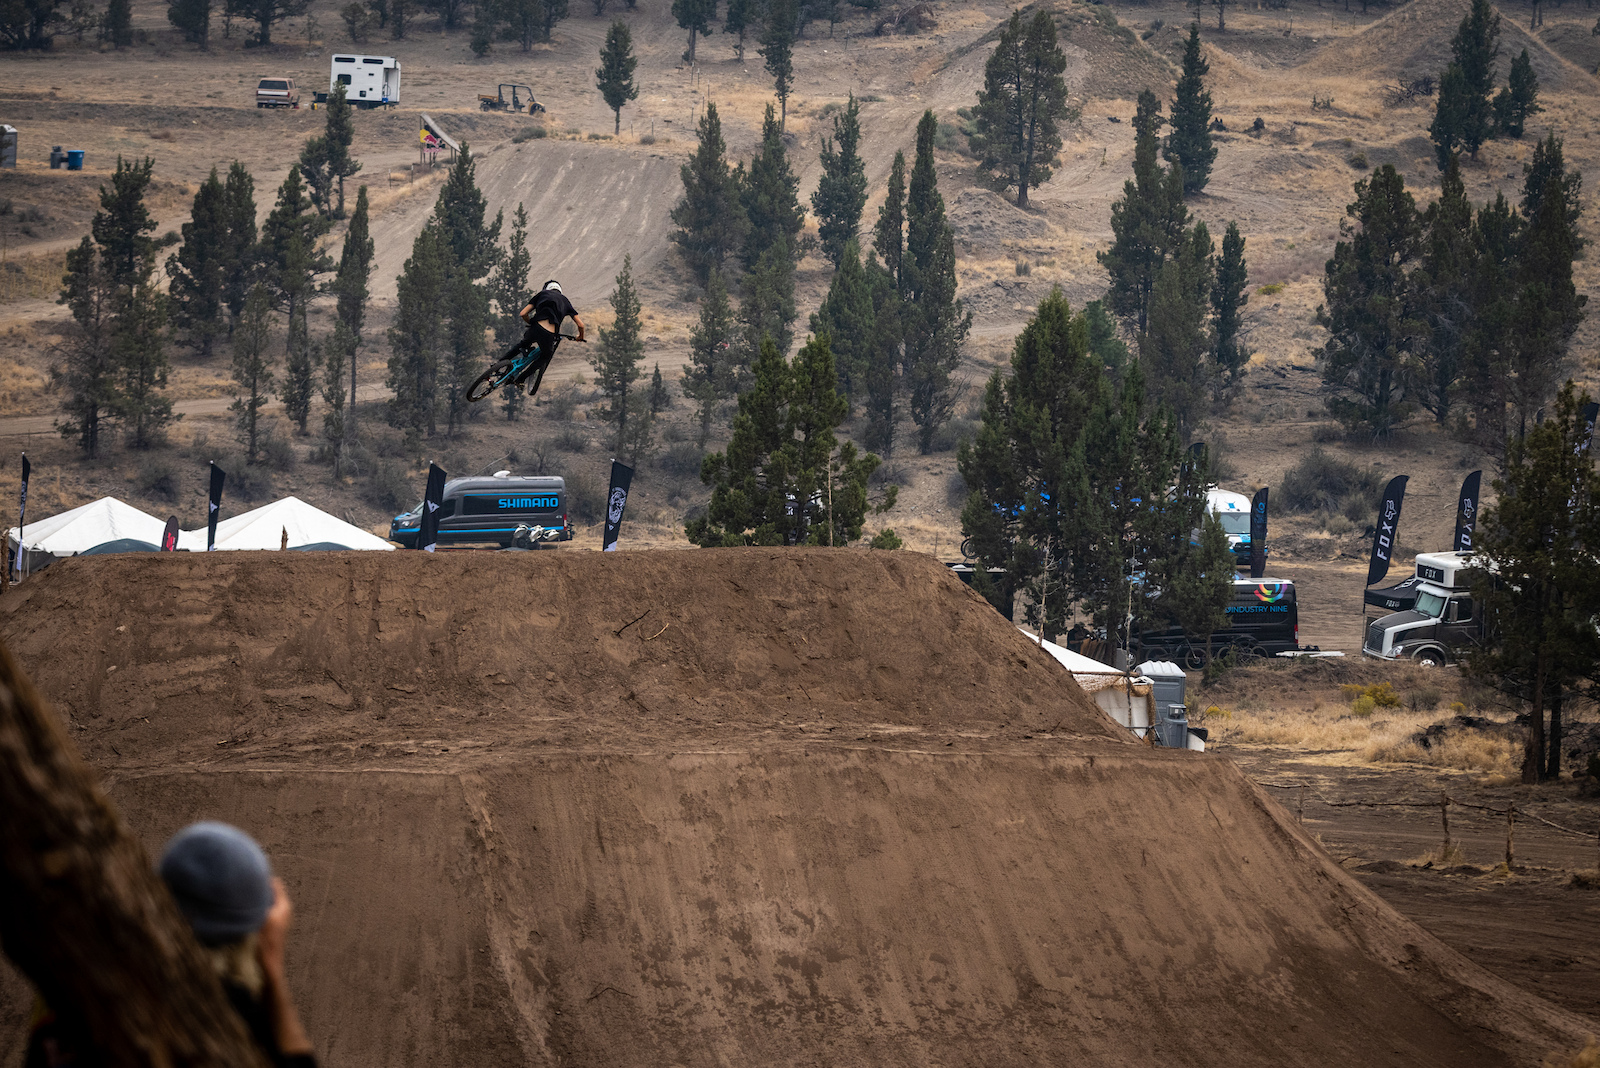 Ryan is a local ripper from Bend Oregon - big smiles and ripping style.